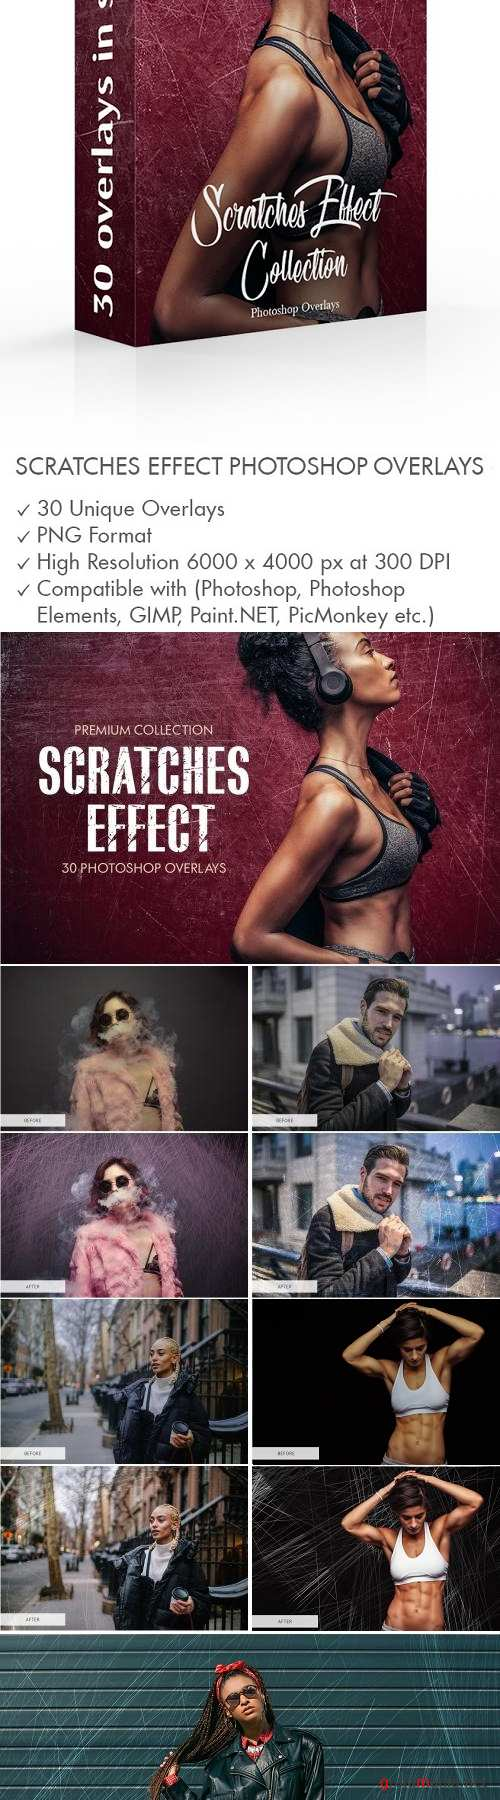 Scratches Effect Photoshop Overlays - 3894027